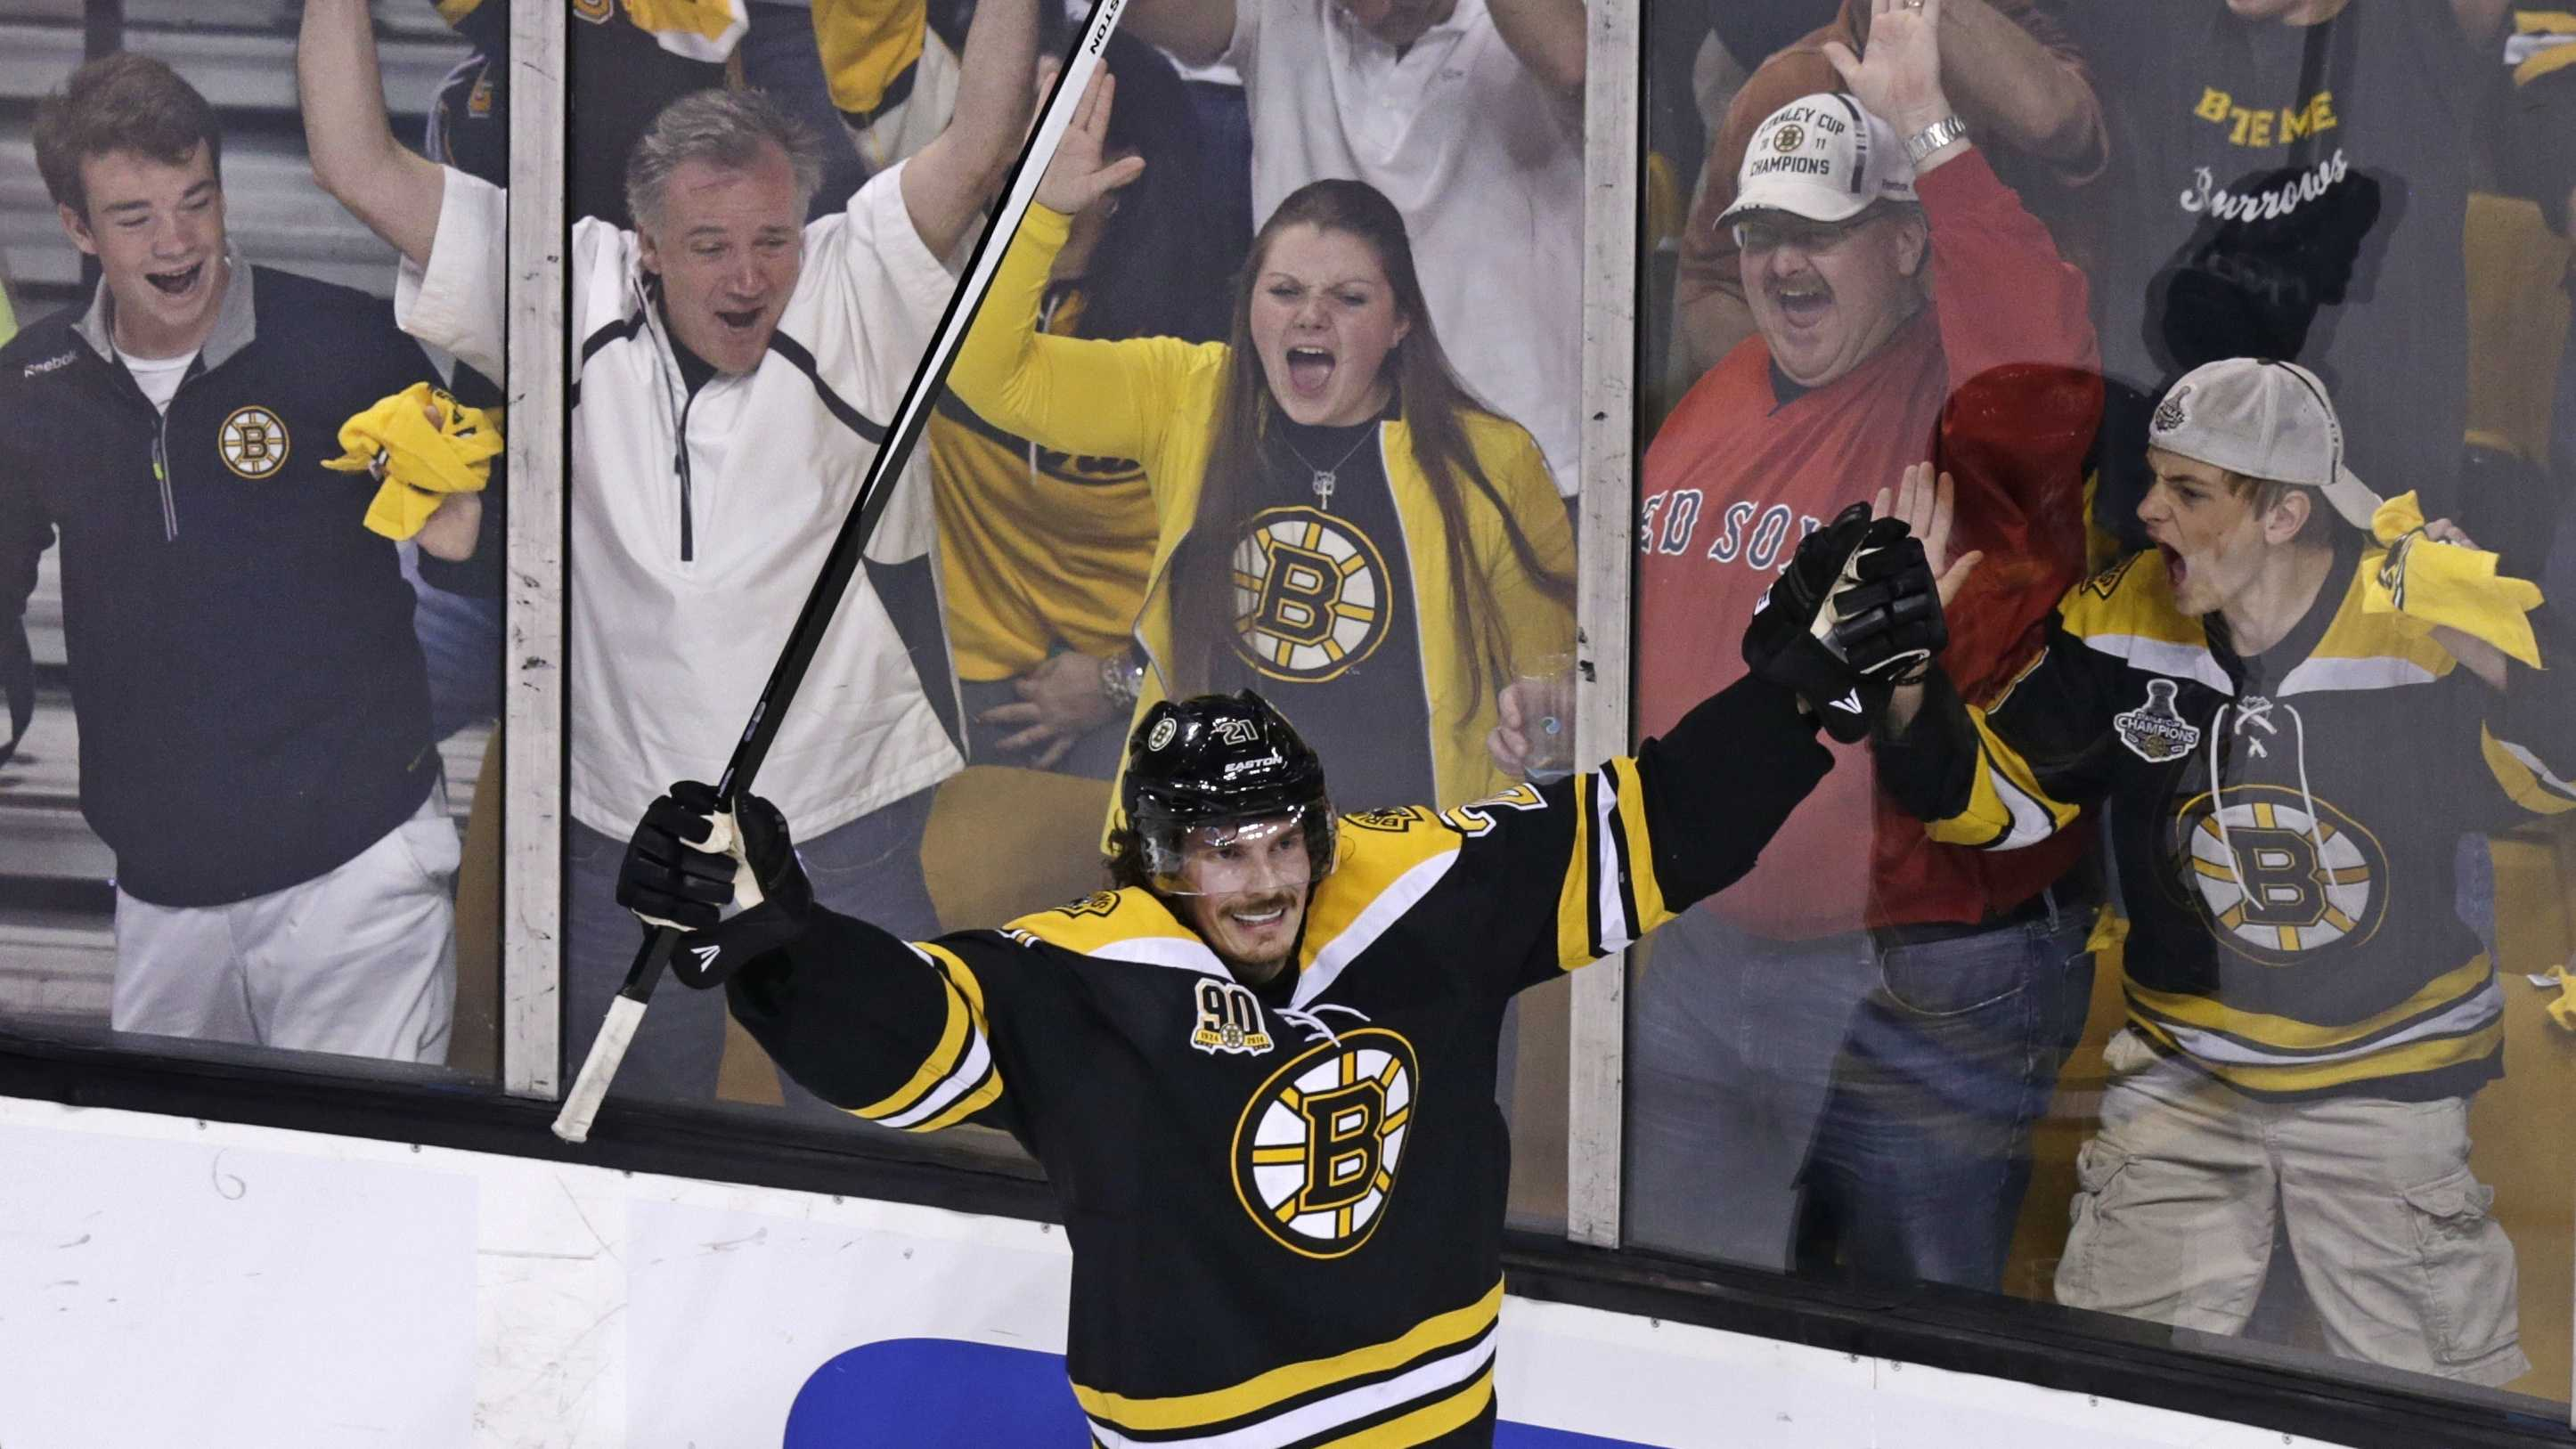 Boston Bruins left wing Loui Eriksson (21) celebrates his goal against Montreal Canadiens goalie Carey Price during the third period of Game 5 in the second-round of the Stanley Cup hockey playoff series in Boston, Saturday, May 10, 2014.